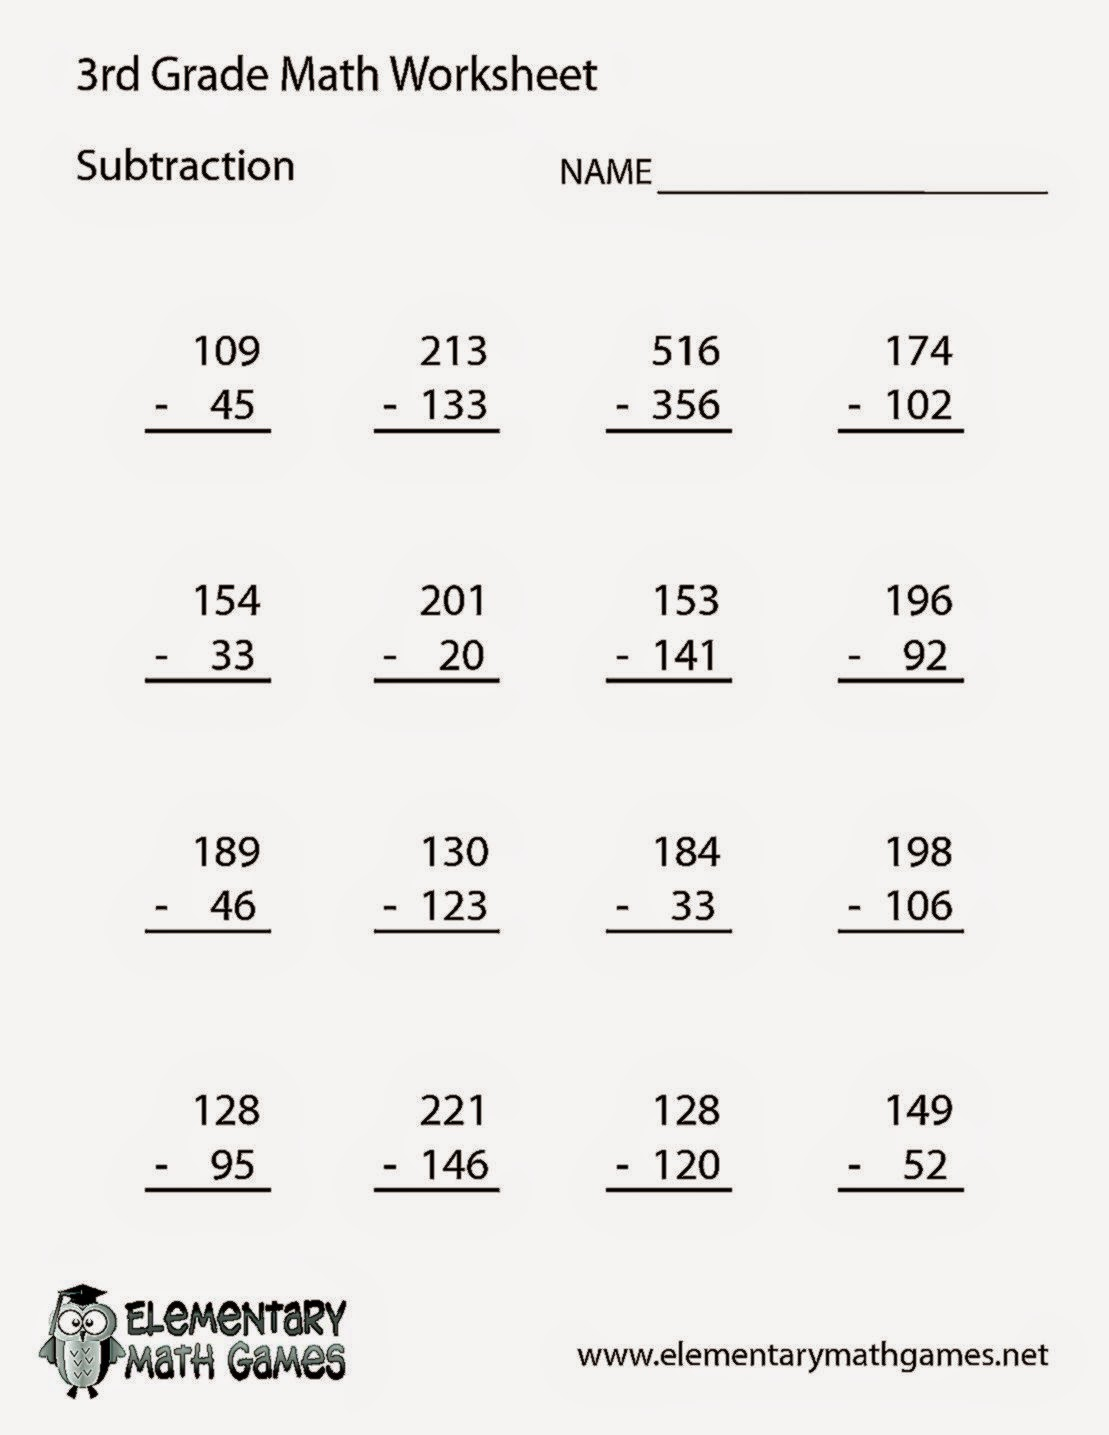 math worksheet : 3rd grade math worksheets  free coloring sheet : 7th Grade Maths Worksheets